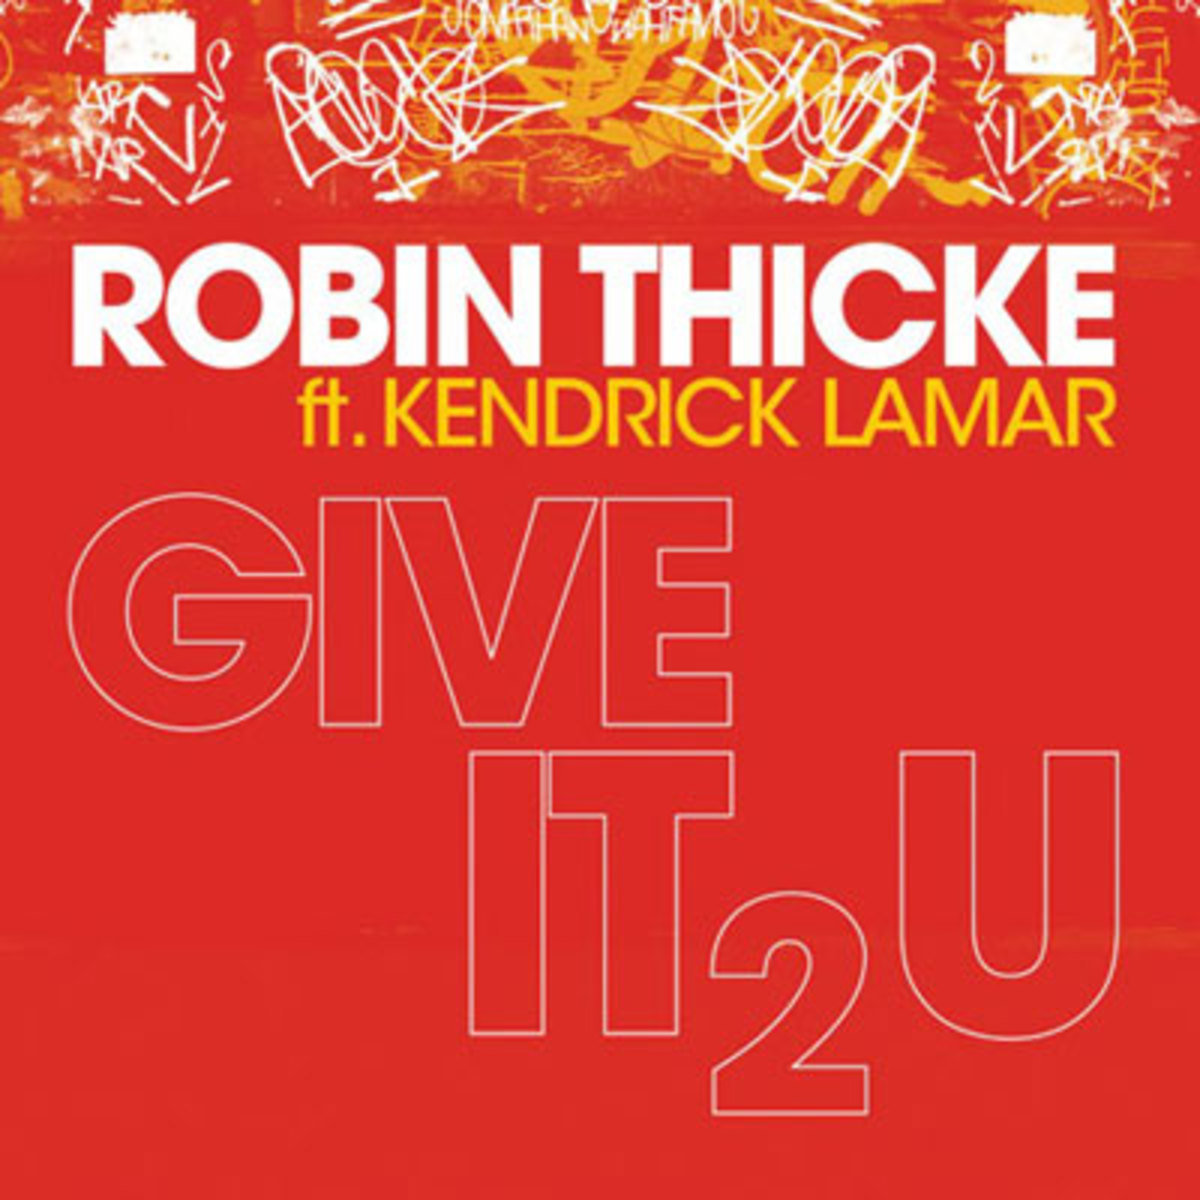 robinthicke-giveittoyou.jpg